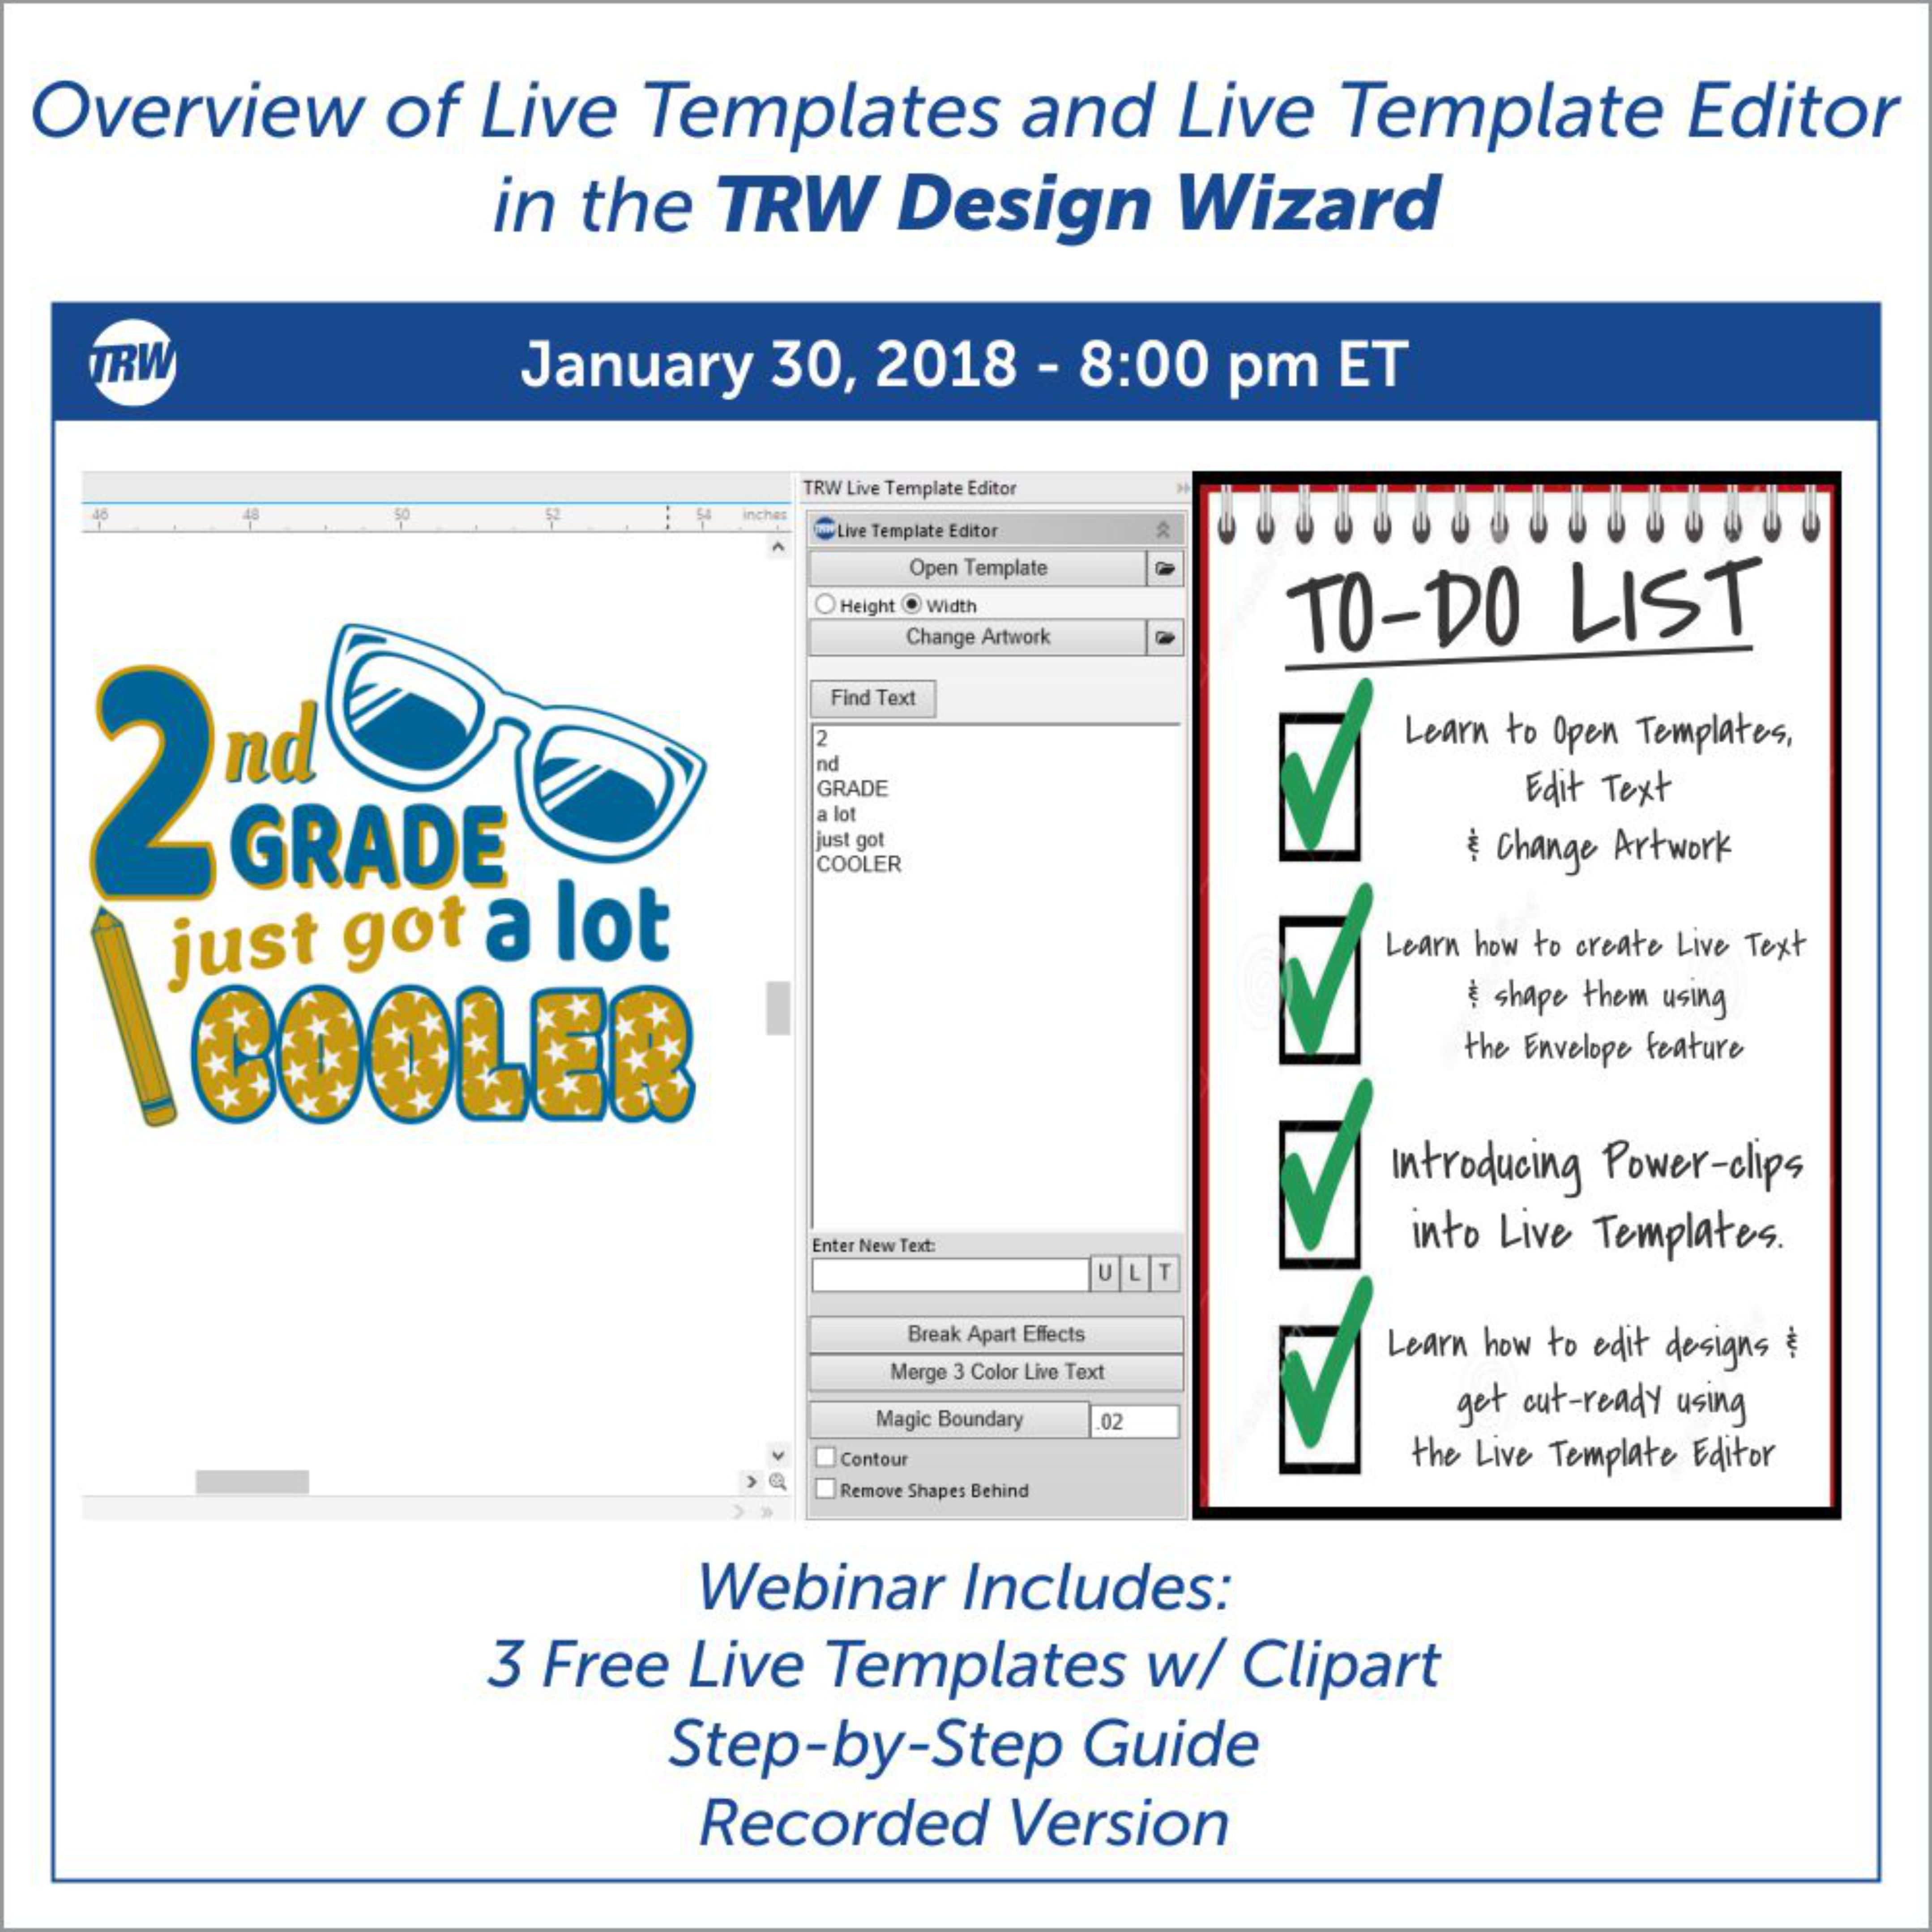 1/30/18 Overview of Live Templates and Live Template Editor